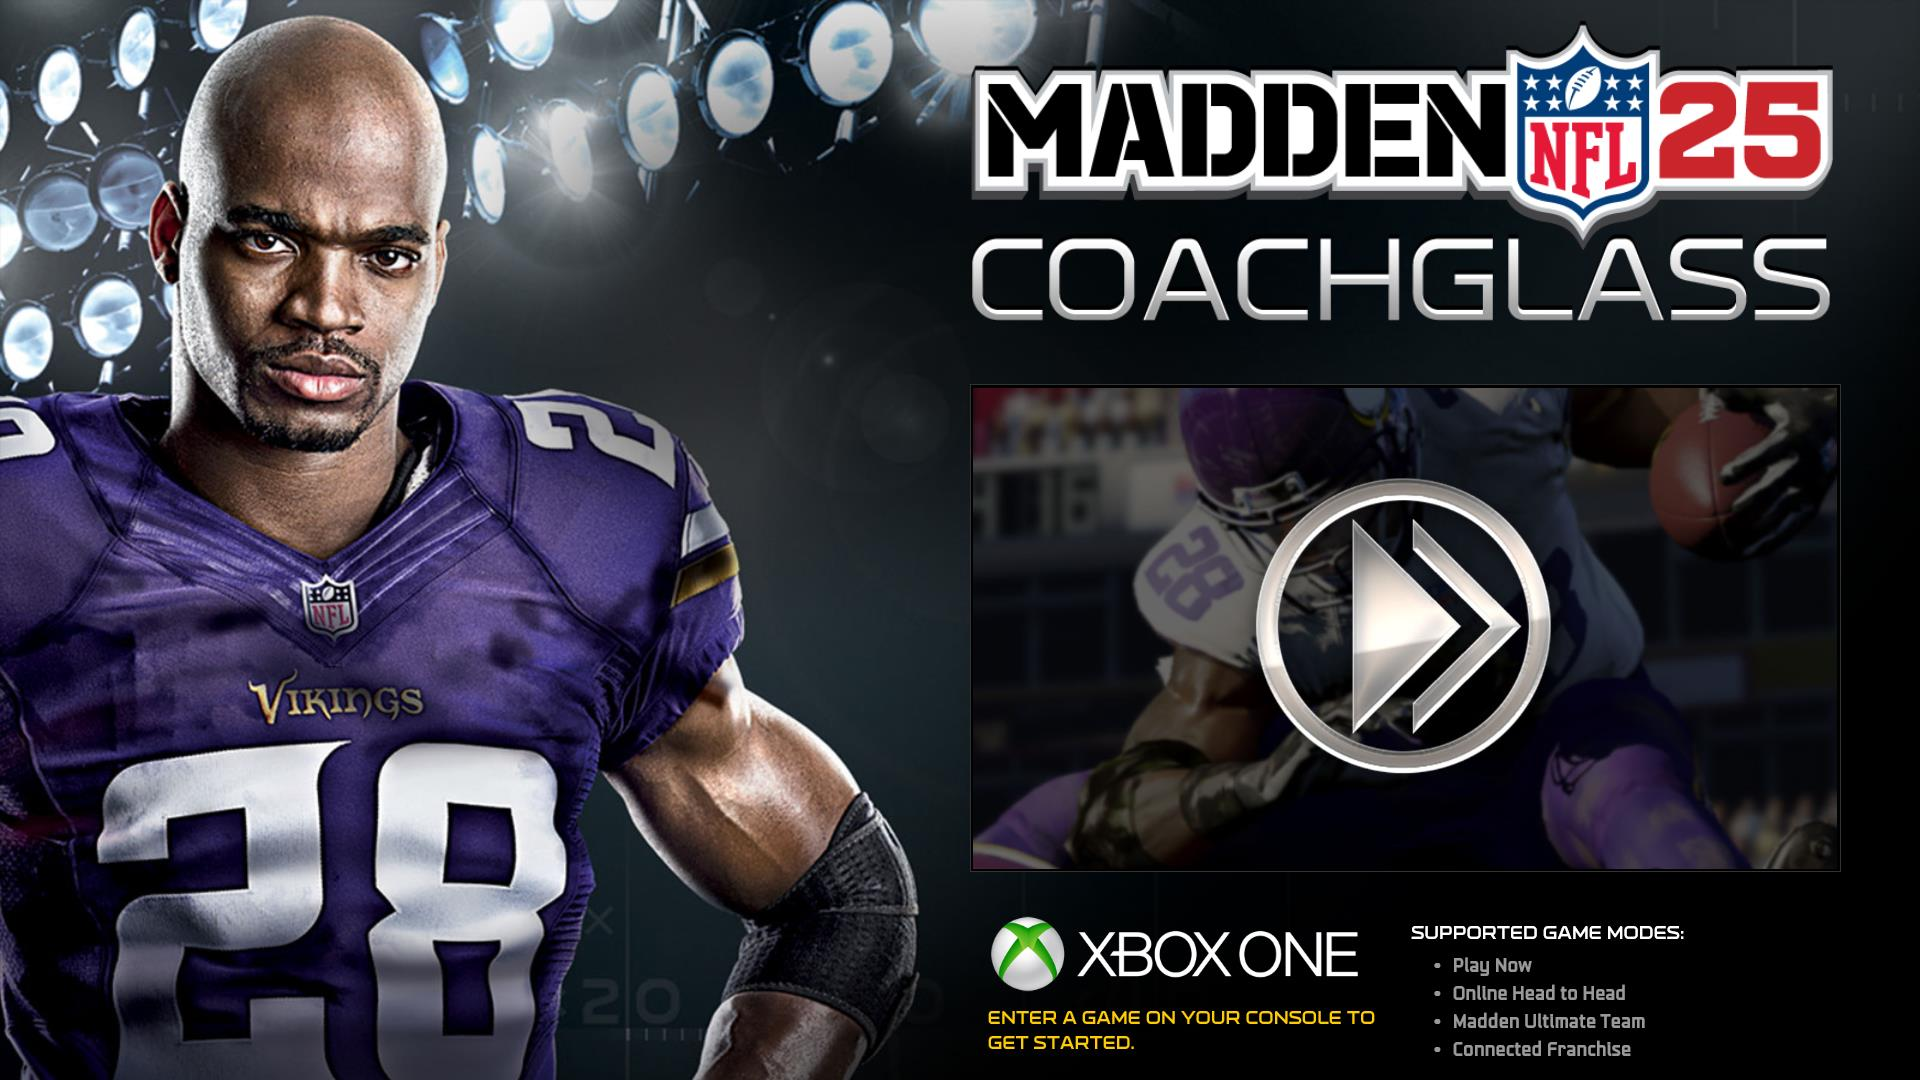 coachglass coming to madden 25 on xbox one